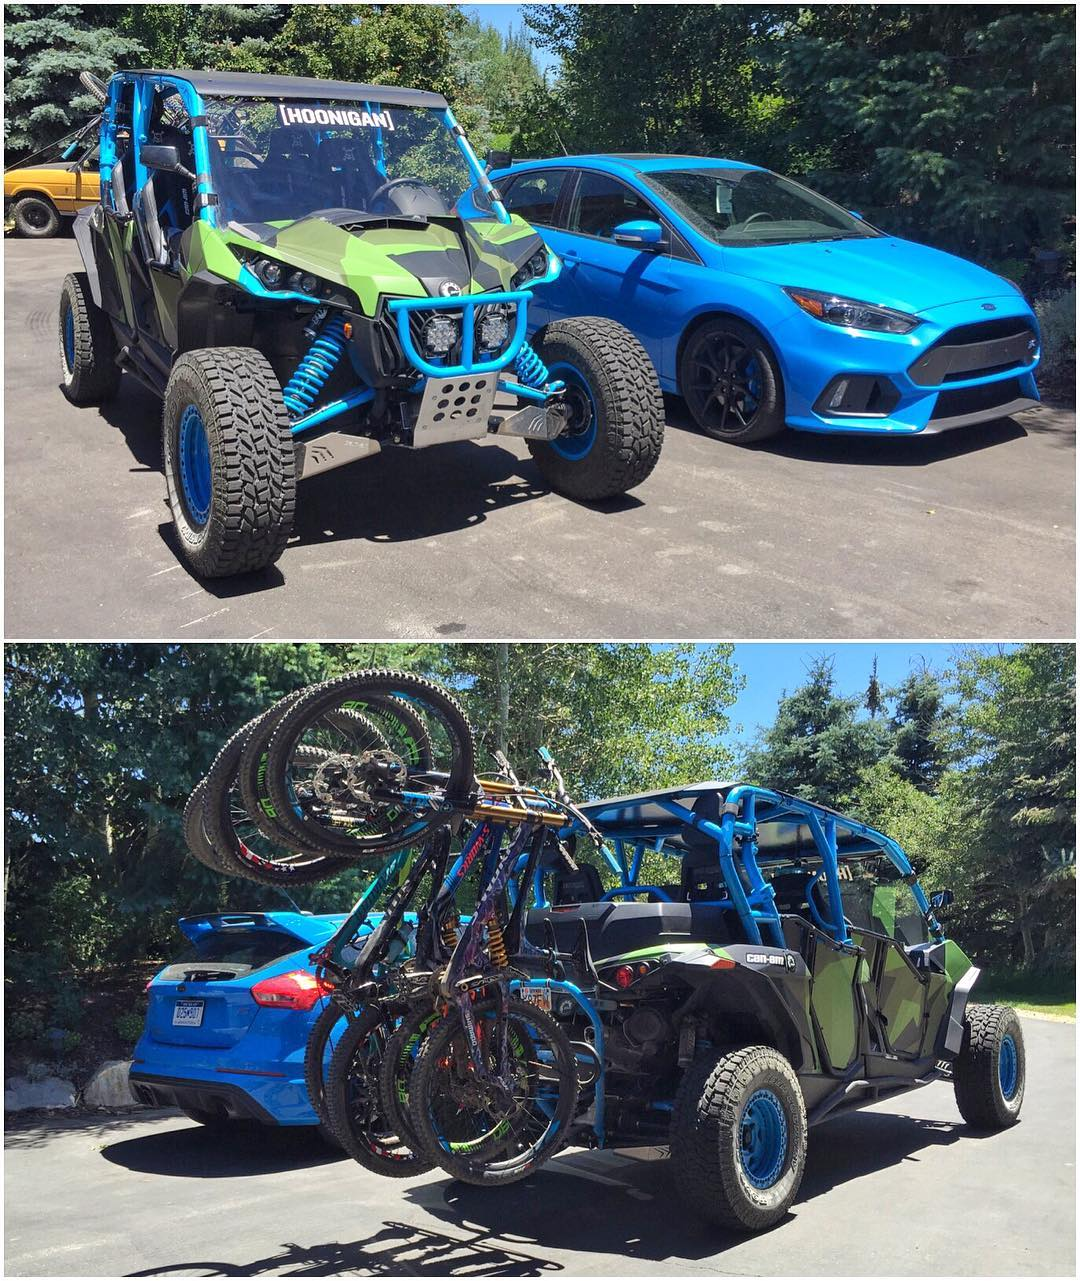 Current setup in my driveway: two very different ways to have 4-wheeled fun. #choiceschoices #hooneverything #funshuttle #CanAm_by_KenBlock #FordFocusRS